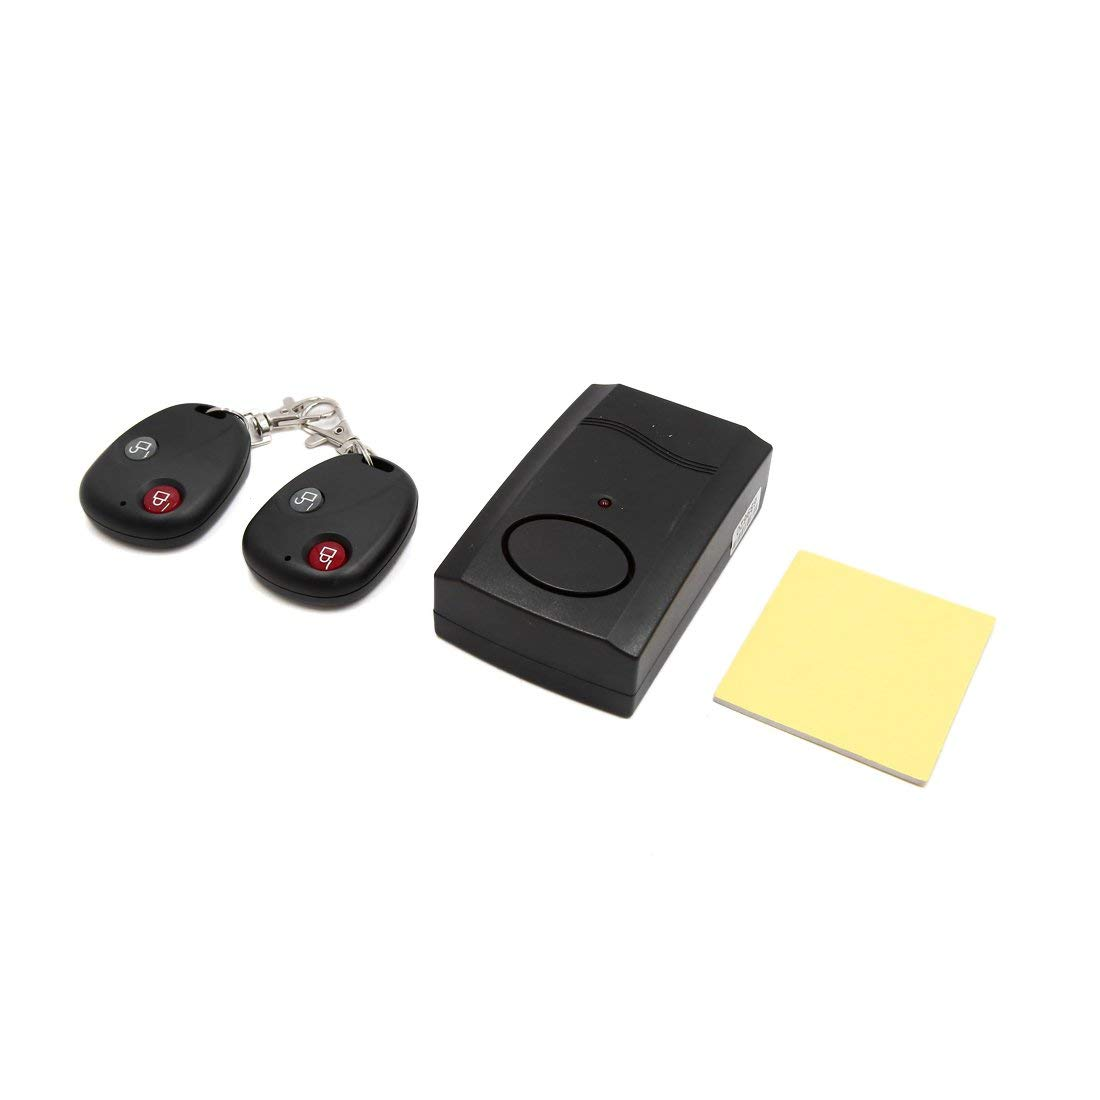 uxcell Motorcycle Wireless Security Anti-theft Alarm System w Dual Remote Control